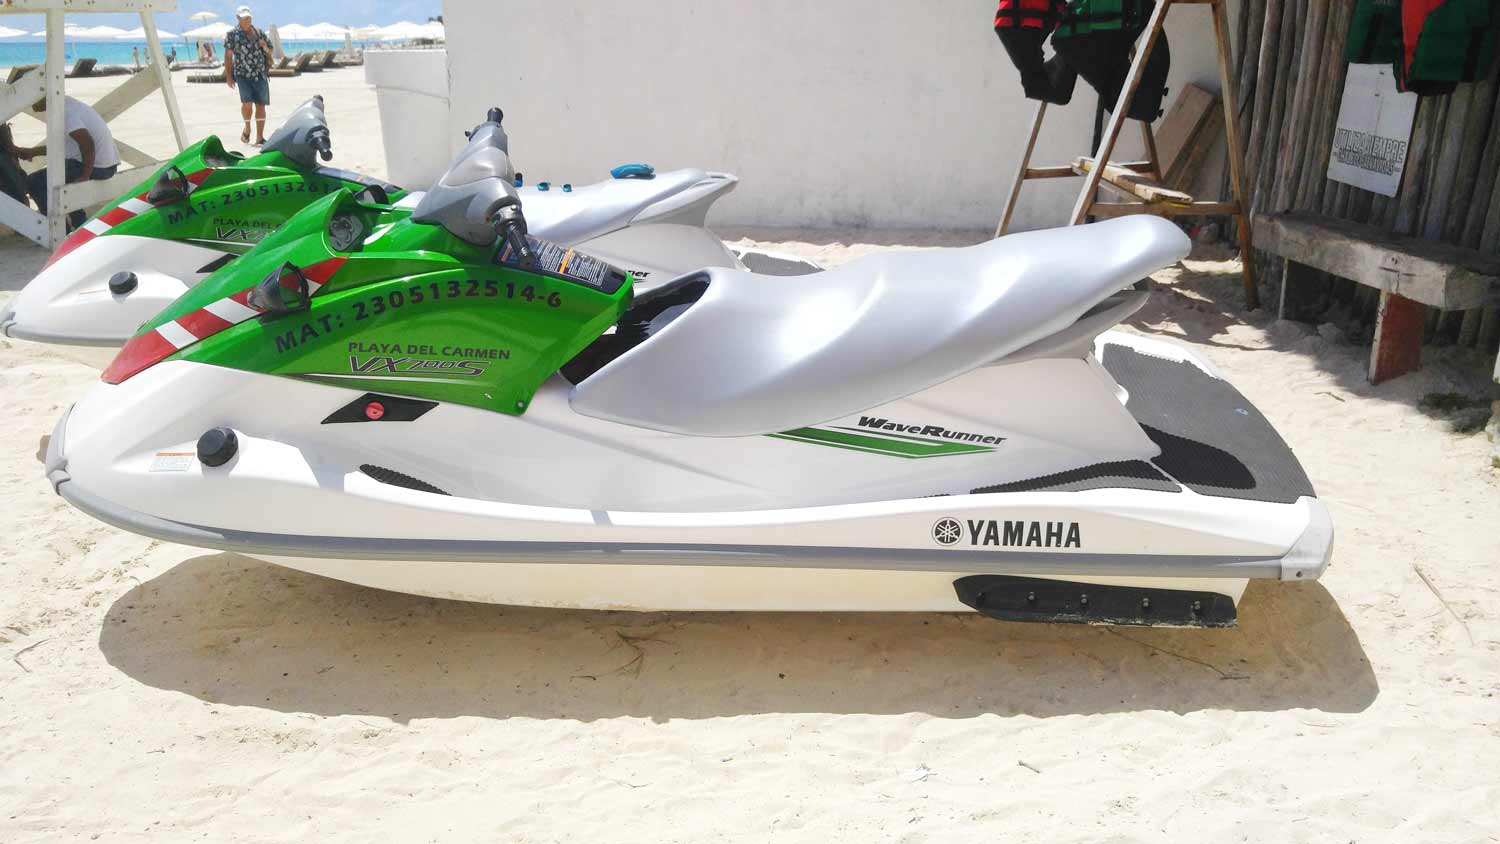 A side view of two green and white jet skis on the beach near the ferry dock in Playa Del Carmen.